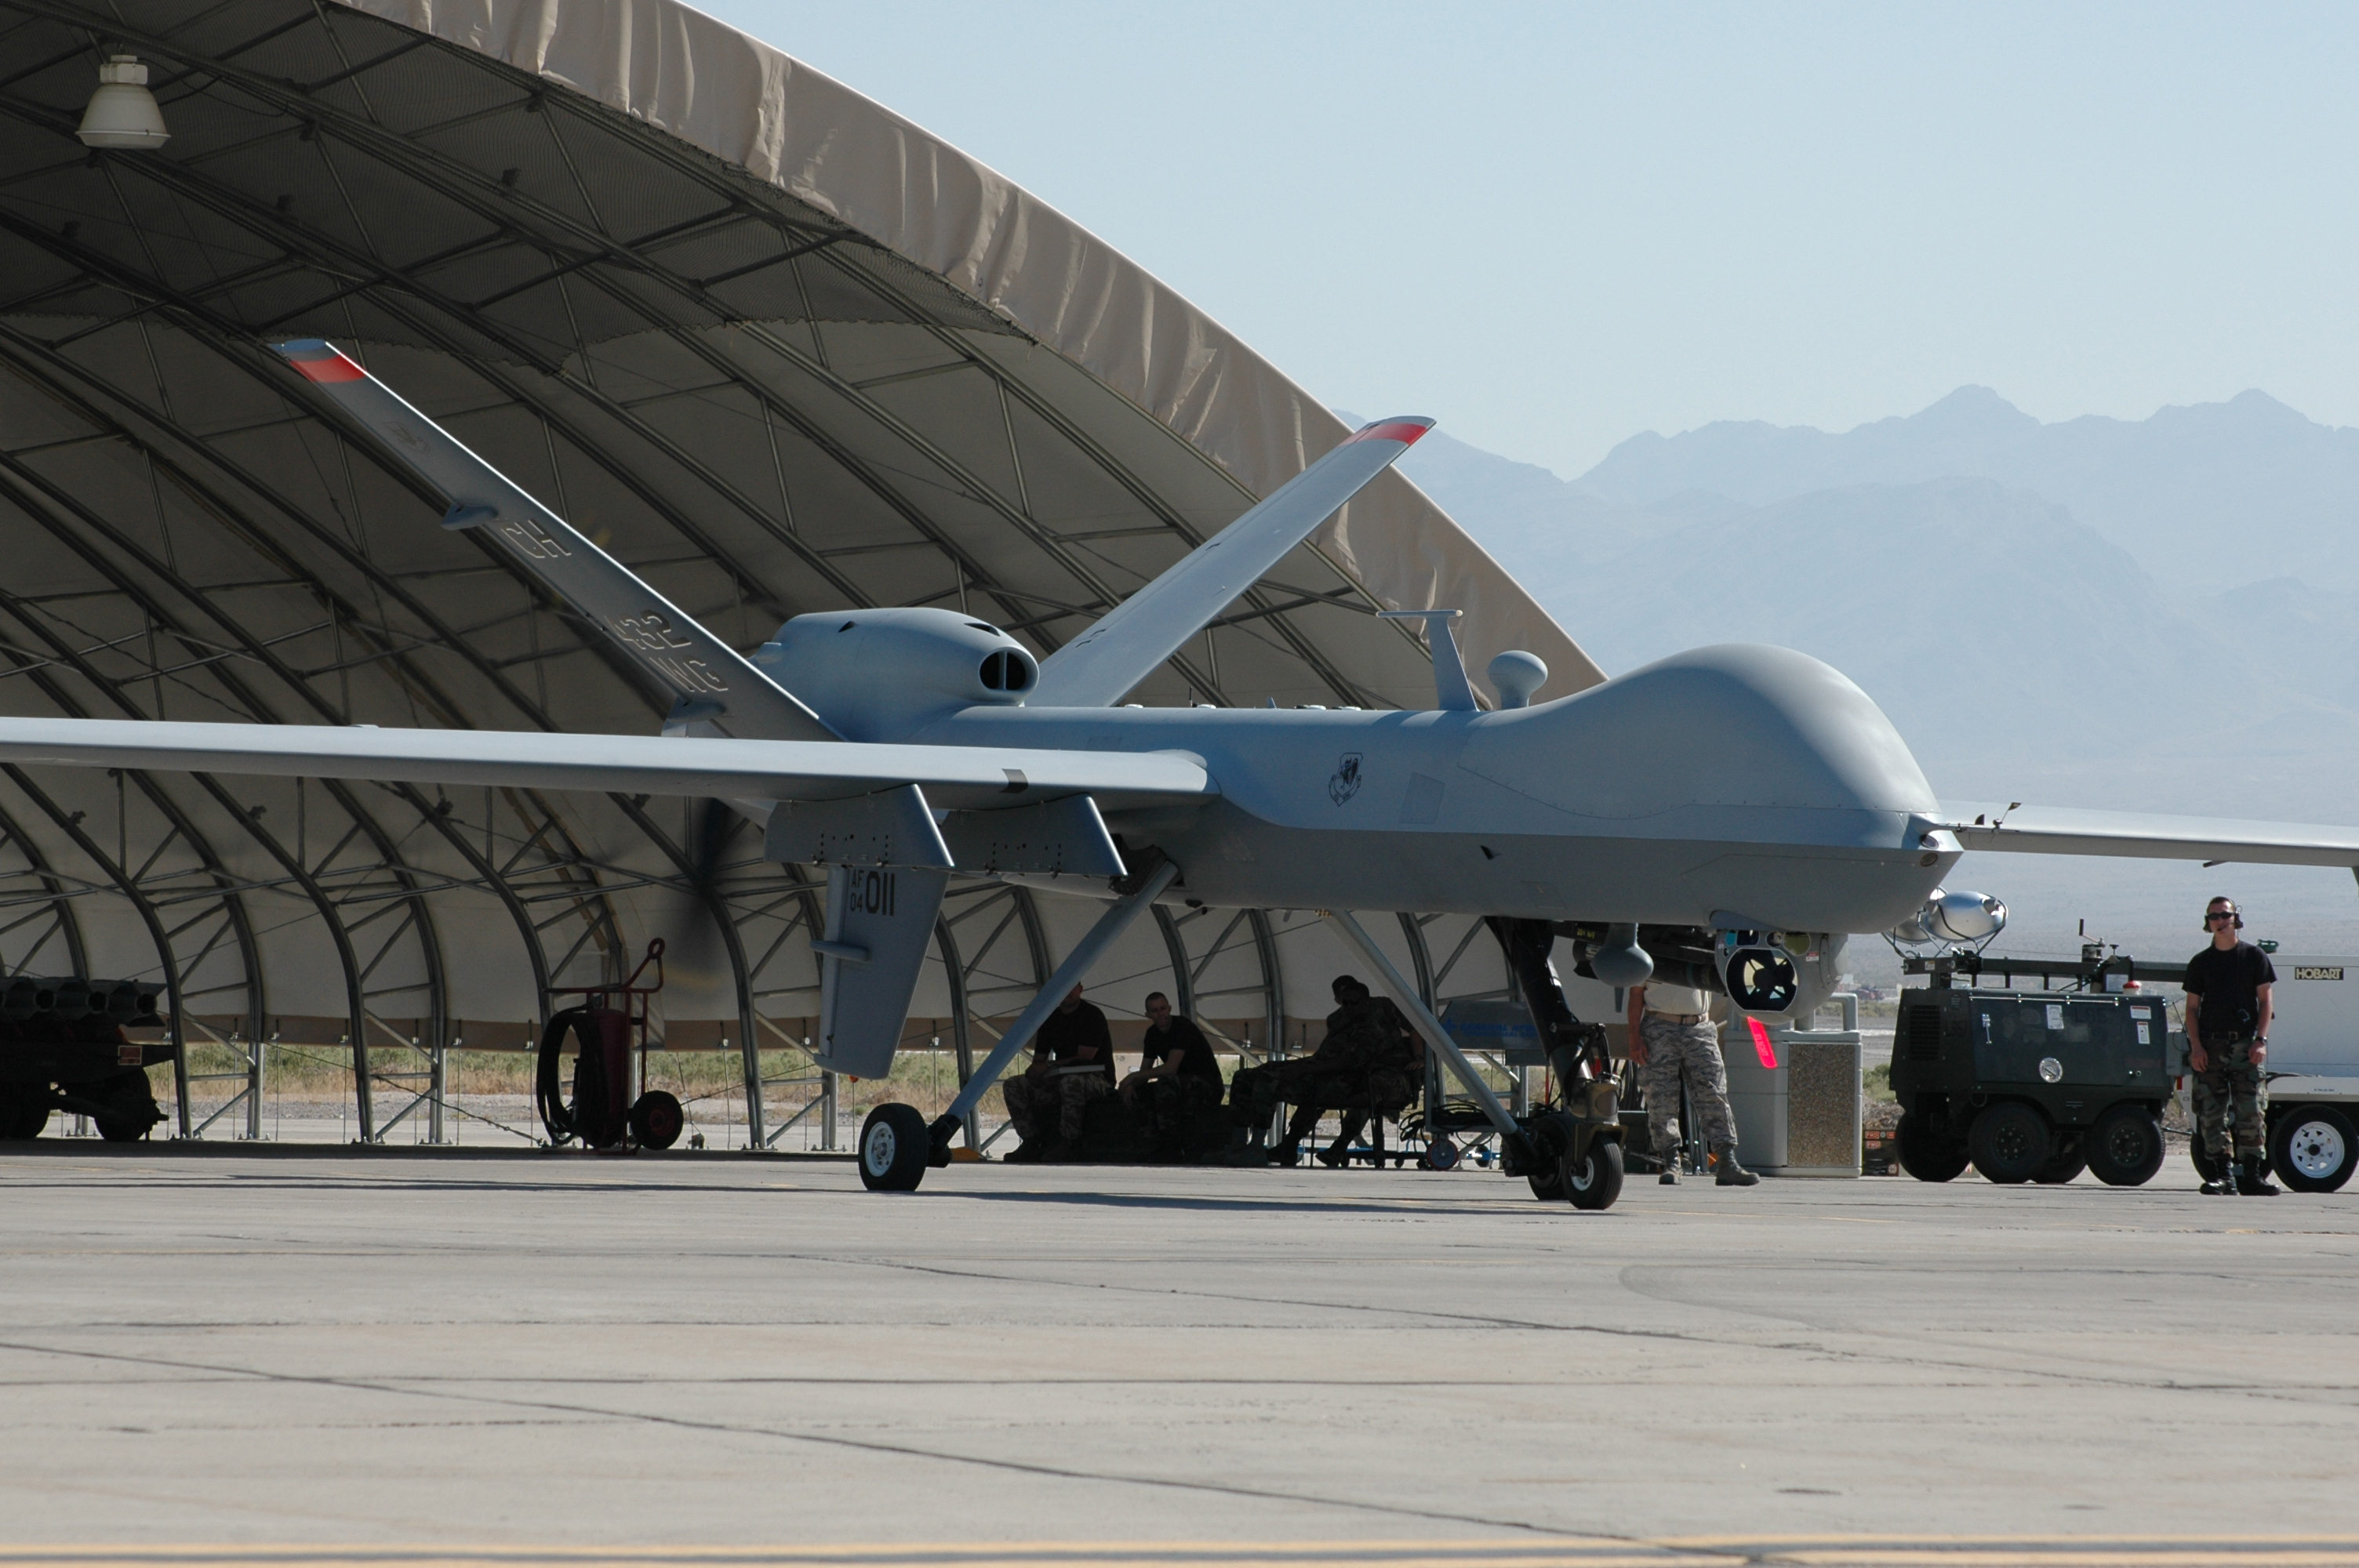 A reaper coming out of the hangar.